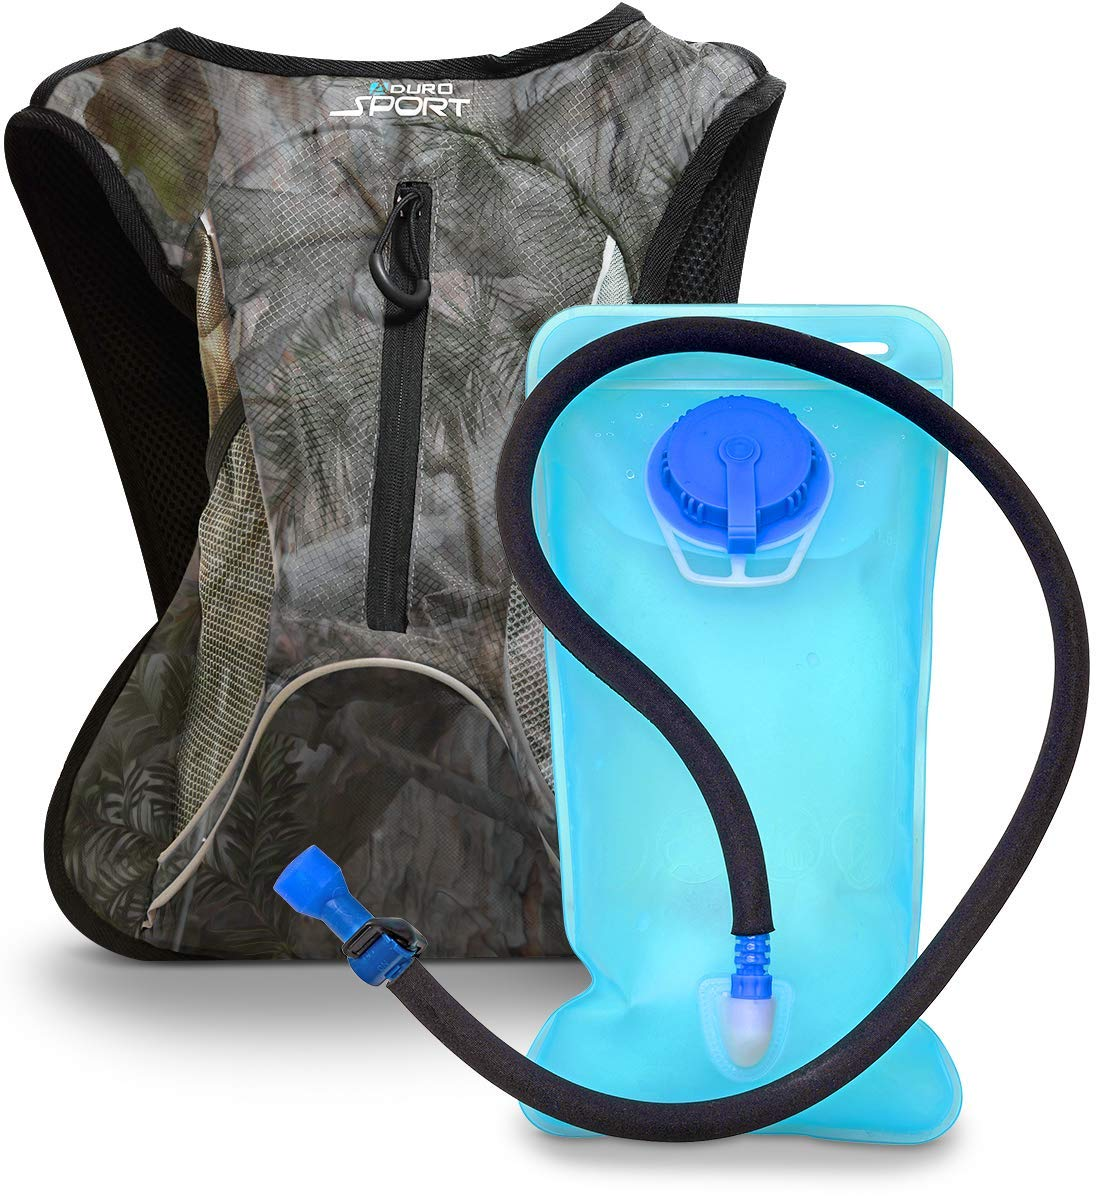 Aduro Sport Hydration Backpack Hydro-Pro , 1.5L 2L 3L BPA Free Water Bladder, Unisex, Water Resistant, Durable, Light Weight, Adjustable Sizing